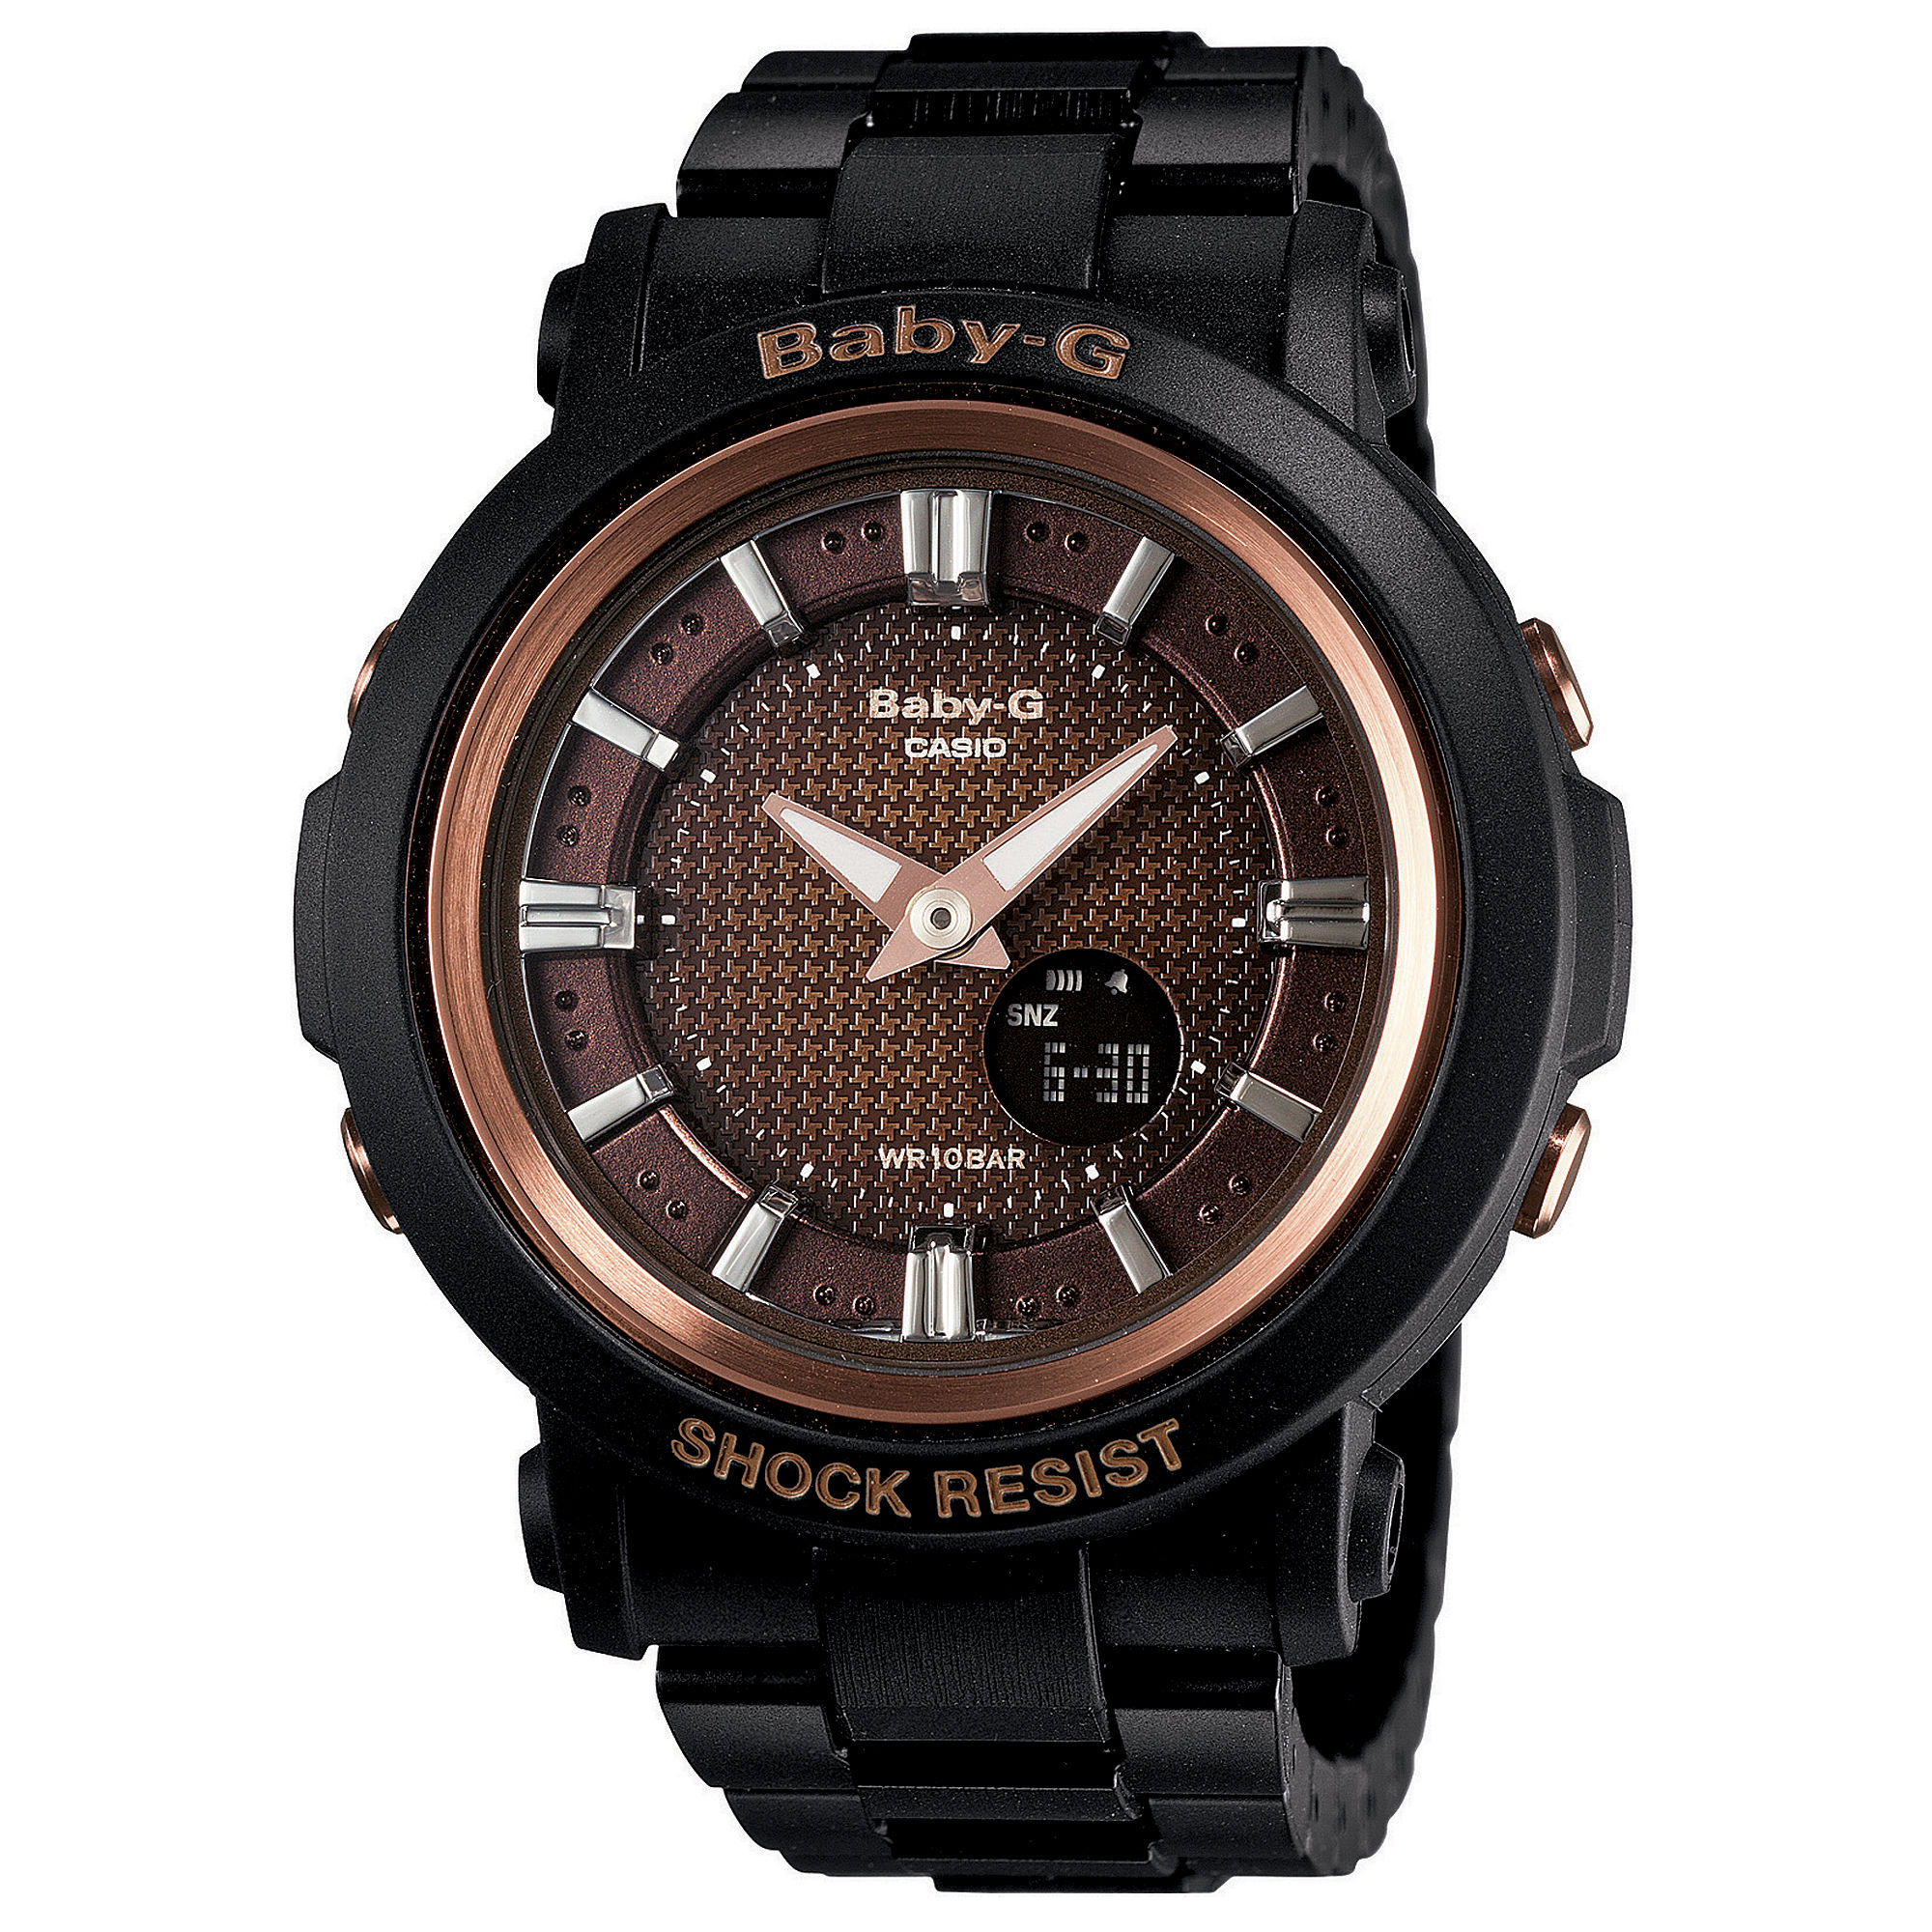 G shock babyg watch womens analogdigital black resin strap 43x47mm bga3011a in black no color for Black resin ladies watch